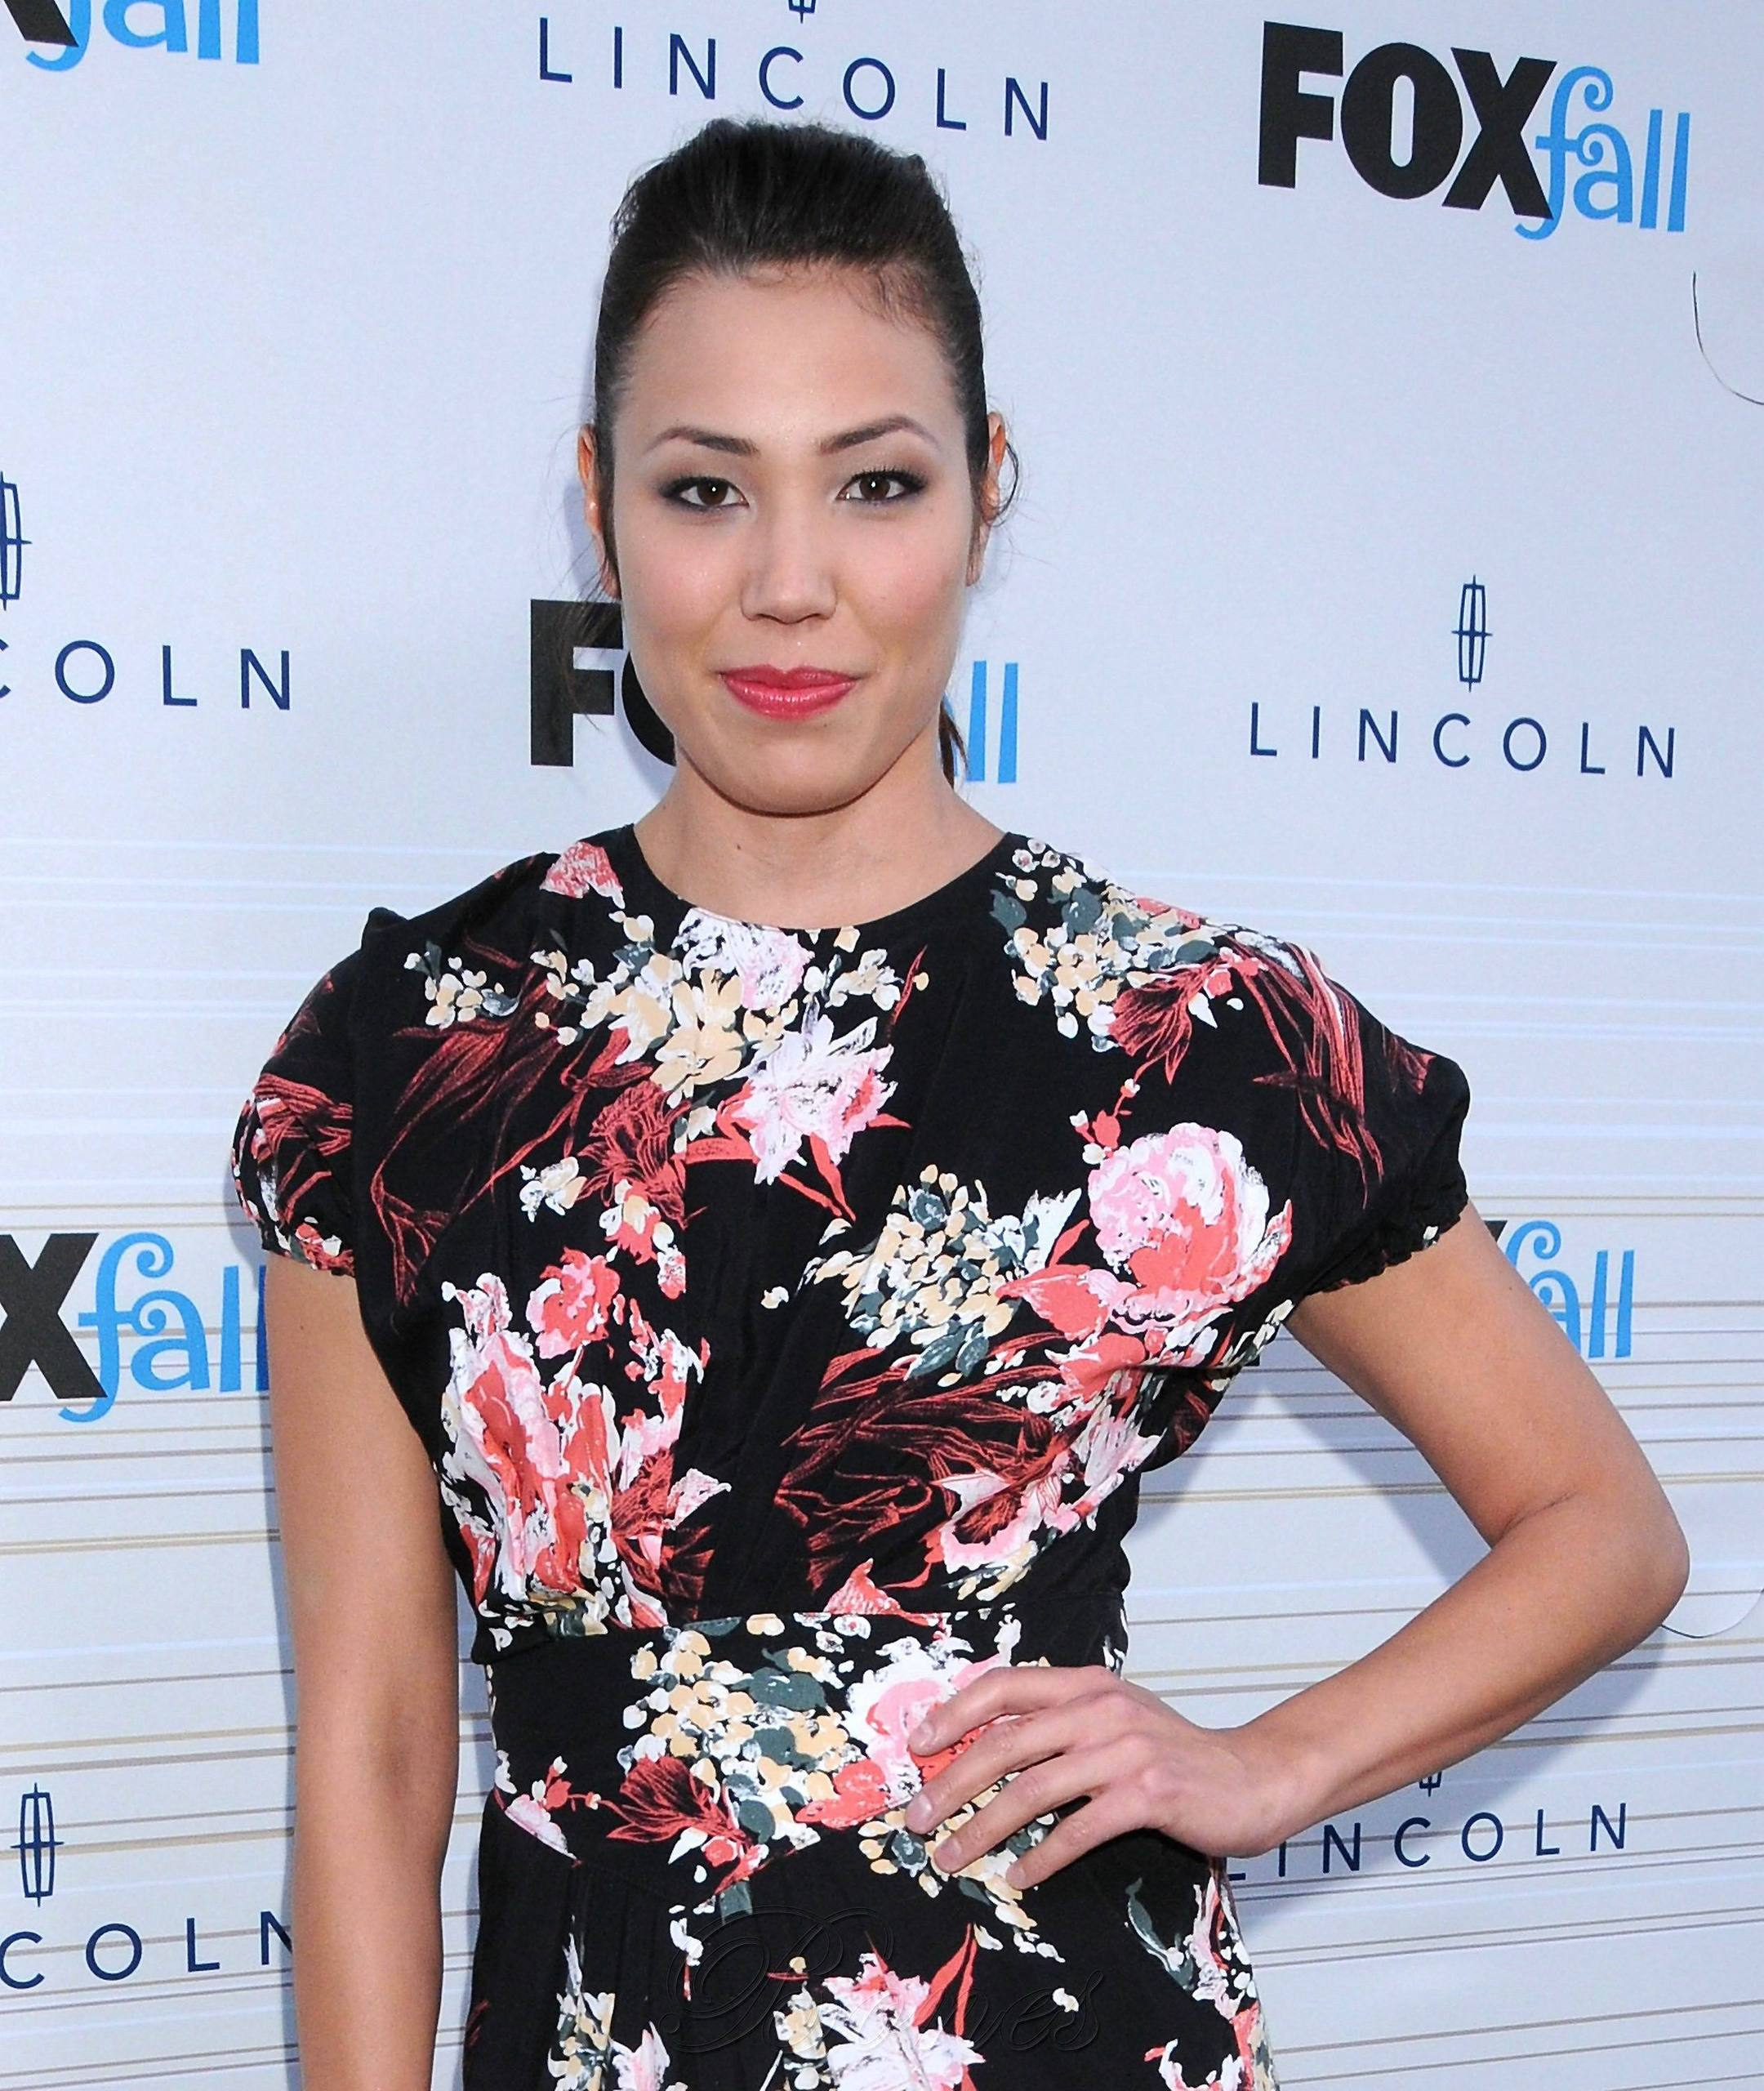 Michaela Conlin - HQ Images Of The Fox Fall Party